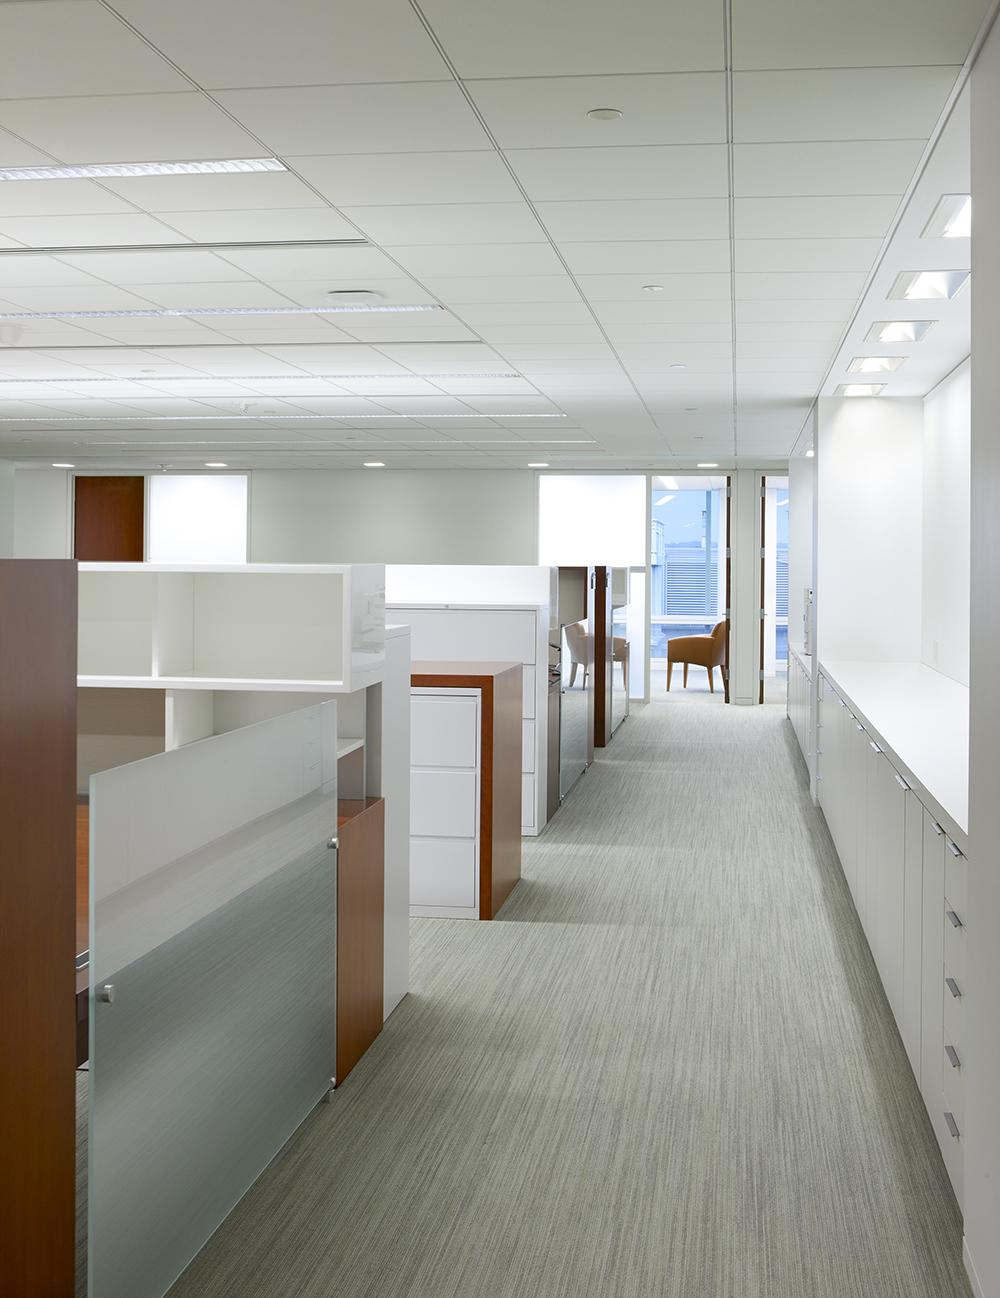 Etched Glass, Brushed Aluminum, and Fabric complement the seamless, compound mitered casework.